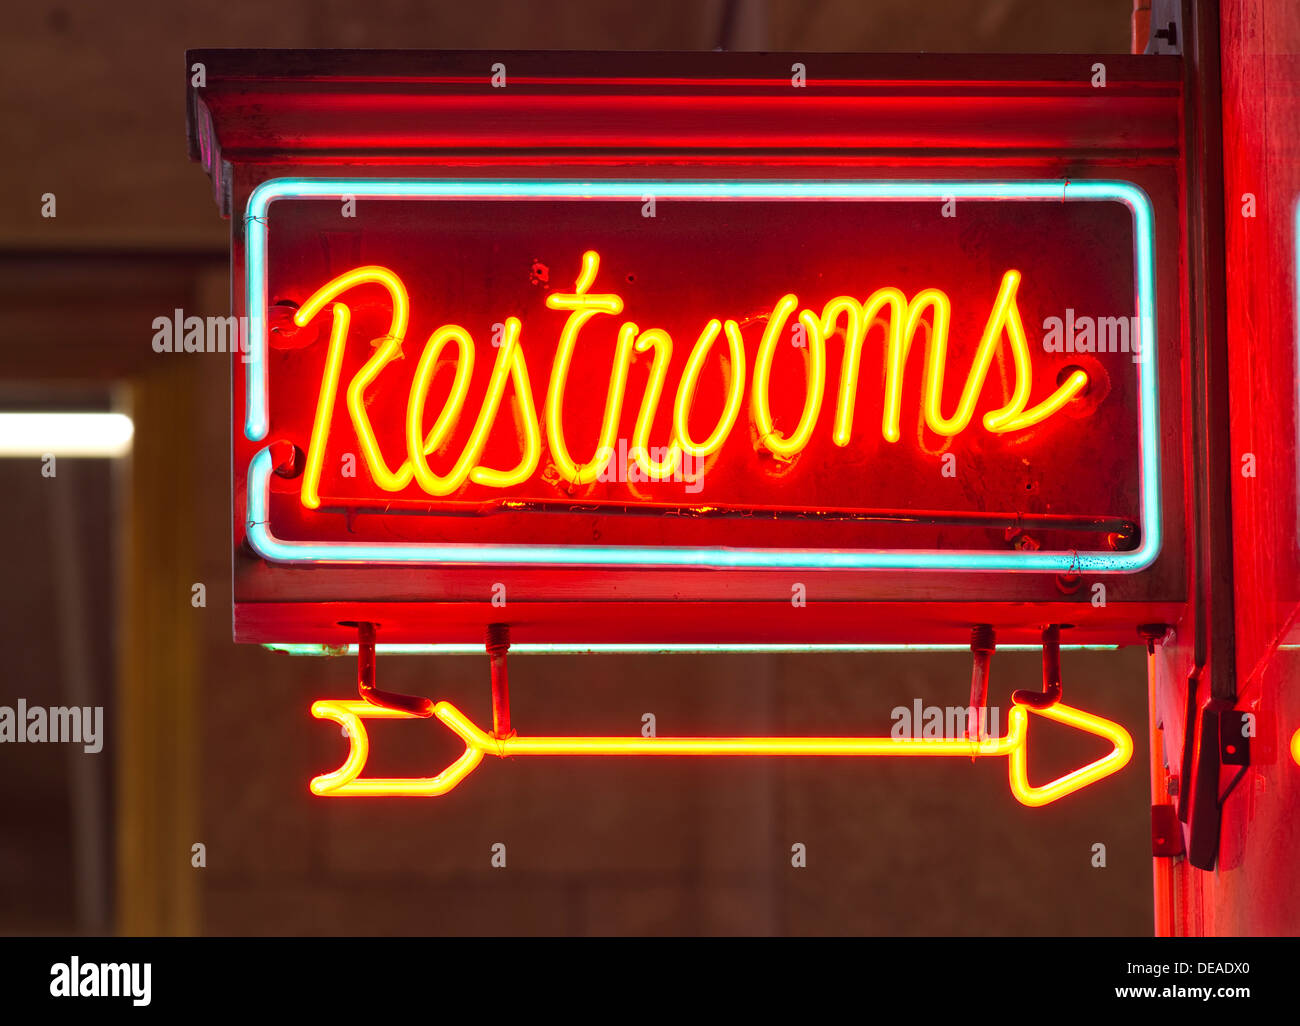 A red neon sign points the way to the restrooms - Stock Image